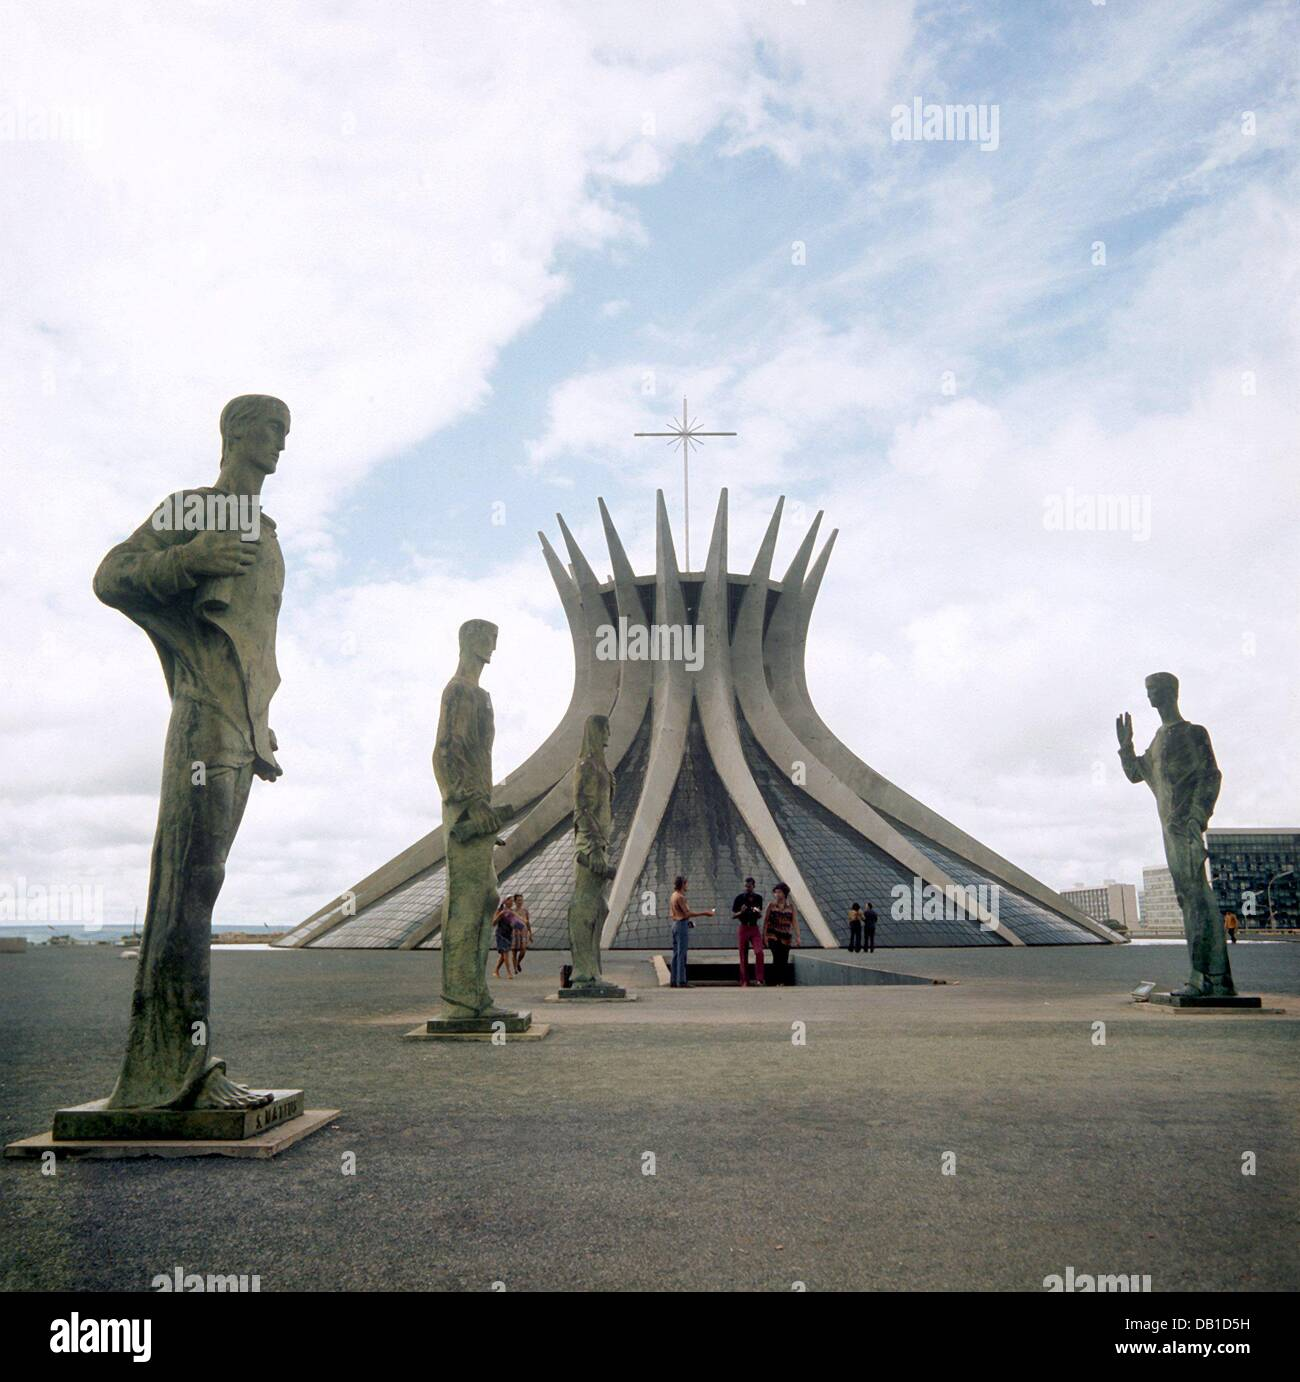 (dpa file) The undated file picture shows the Catedral Metropolitanadesigned by Brazilian star architect Oscar Niemeyer - Stock Image